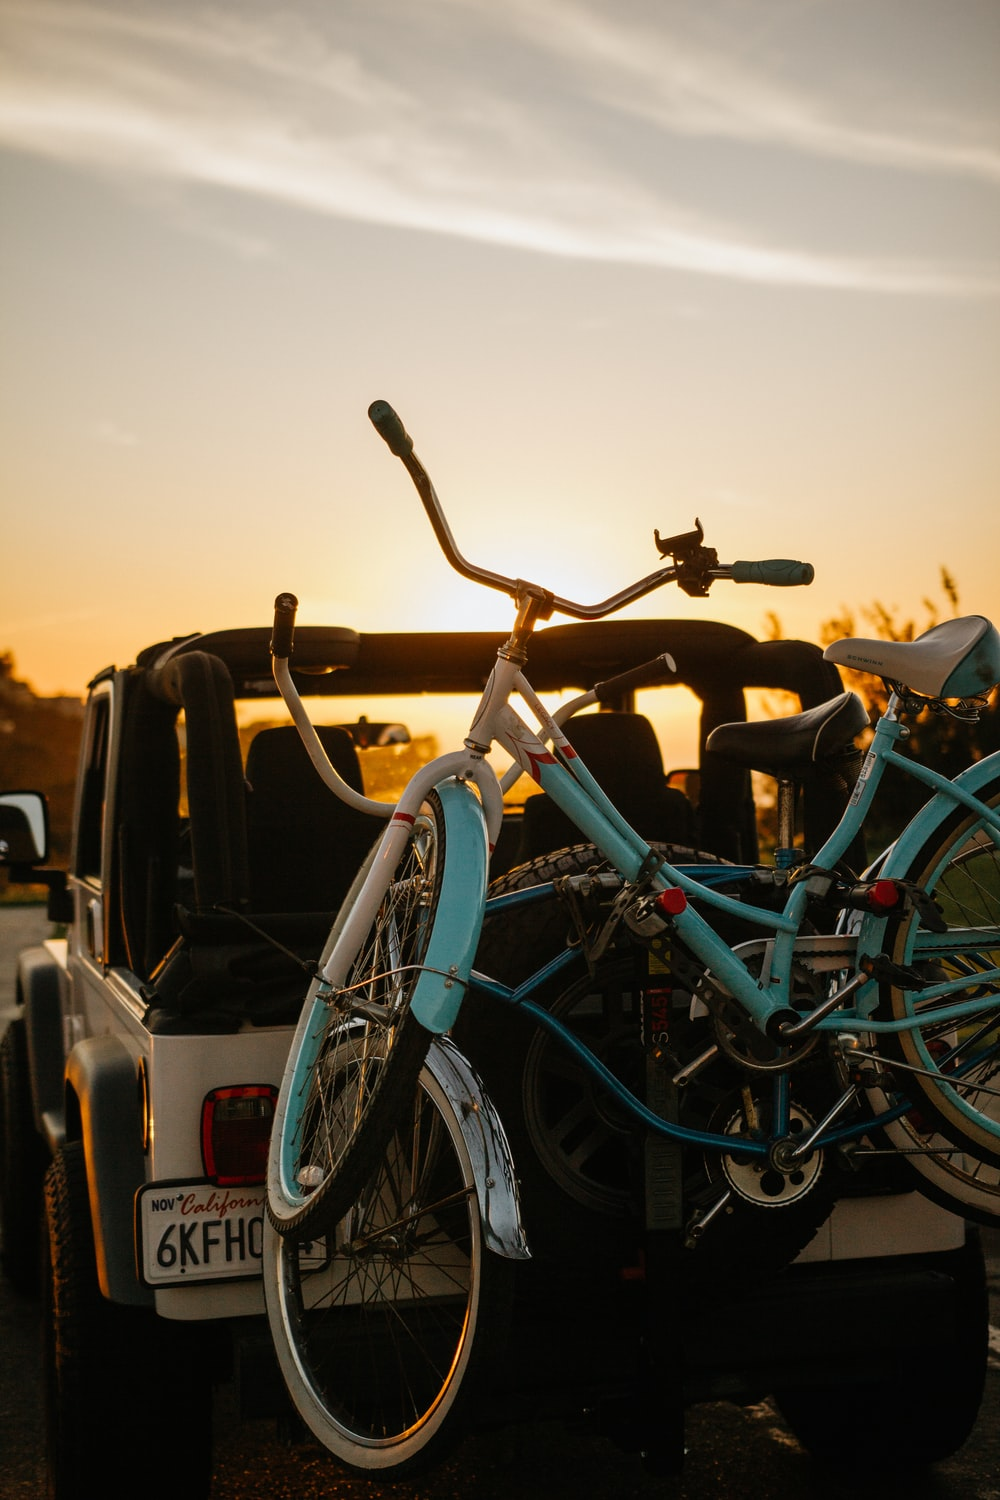 blue city bike parked beside white car during sunset